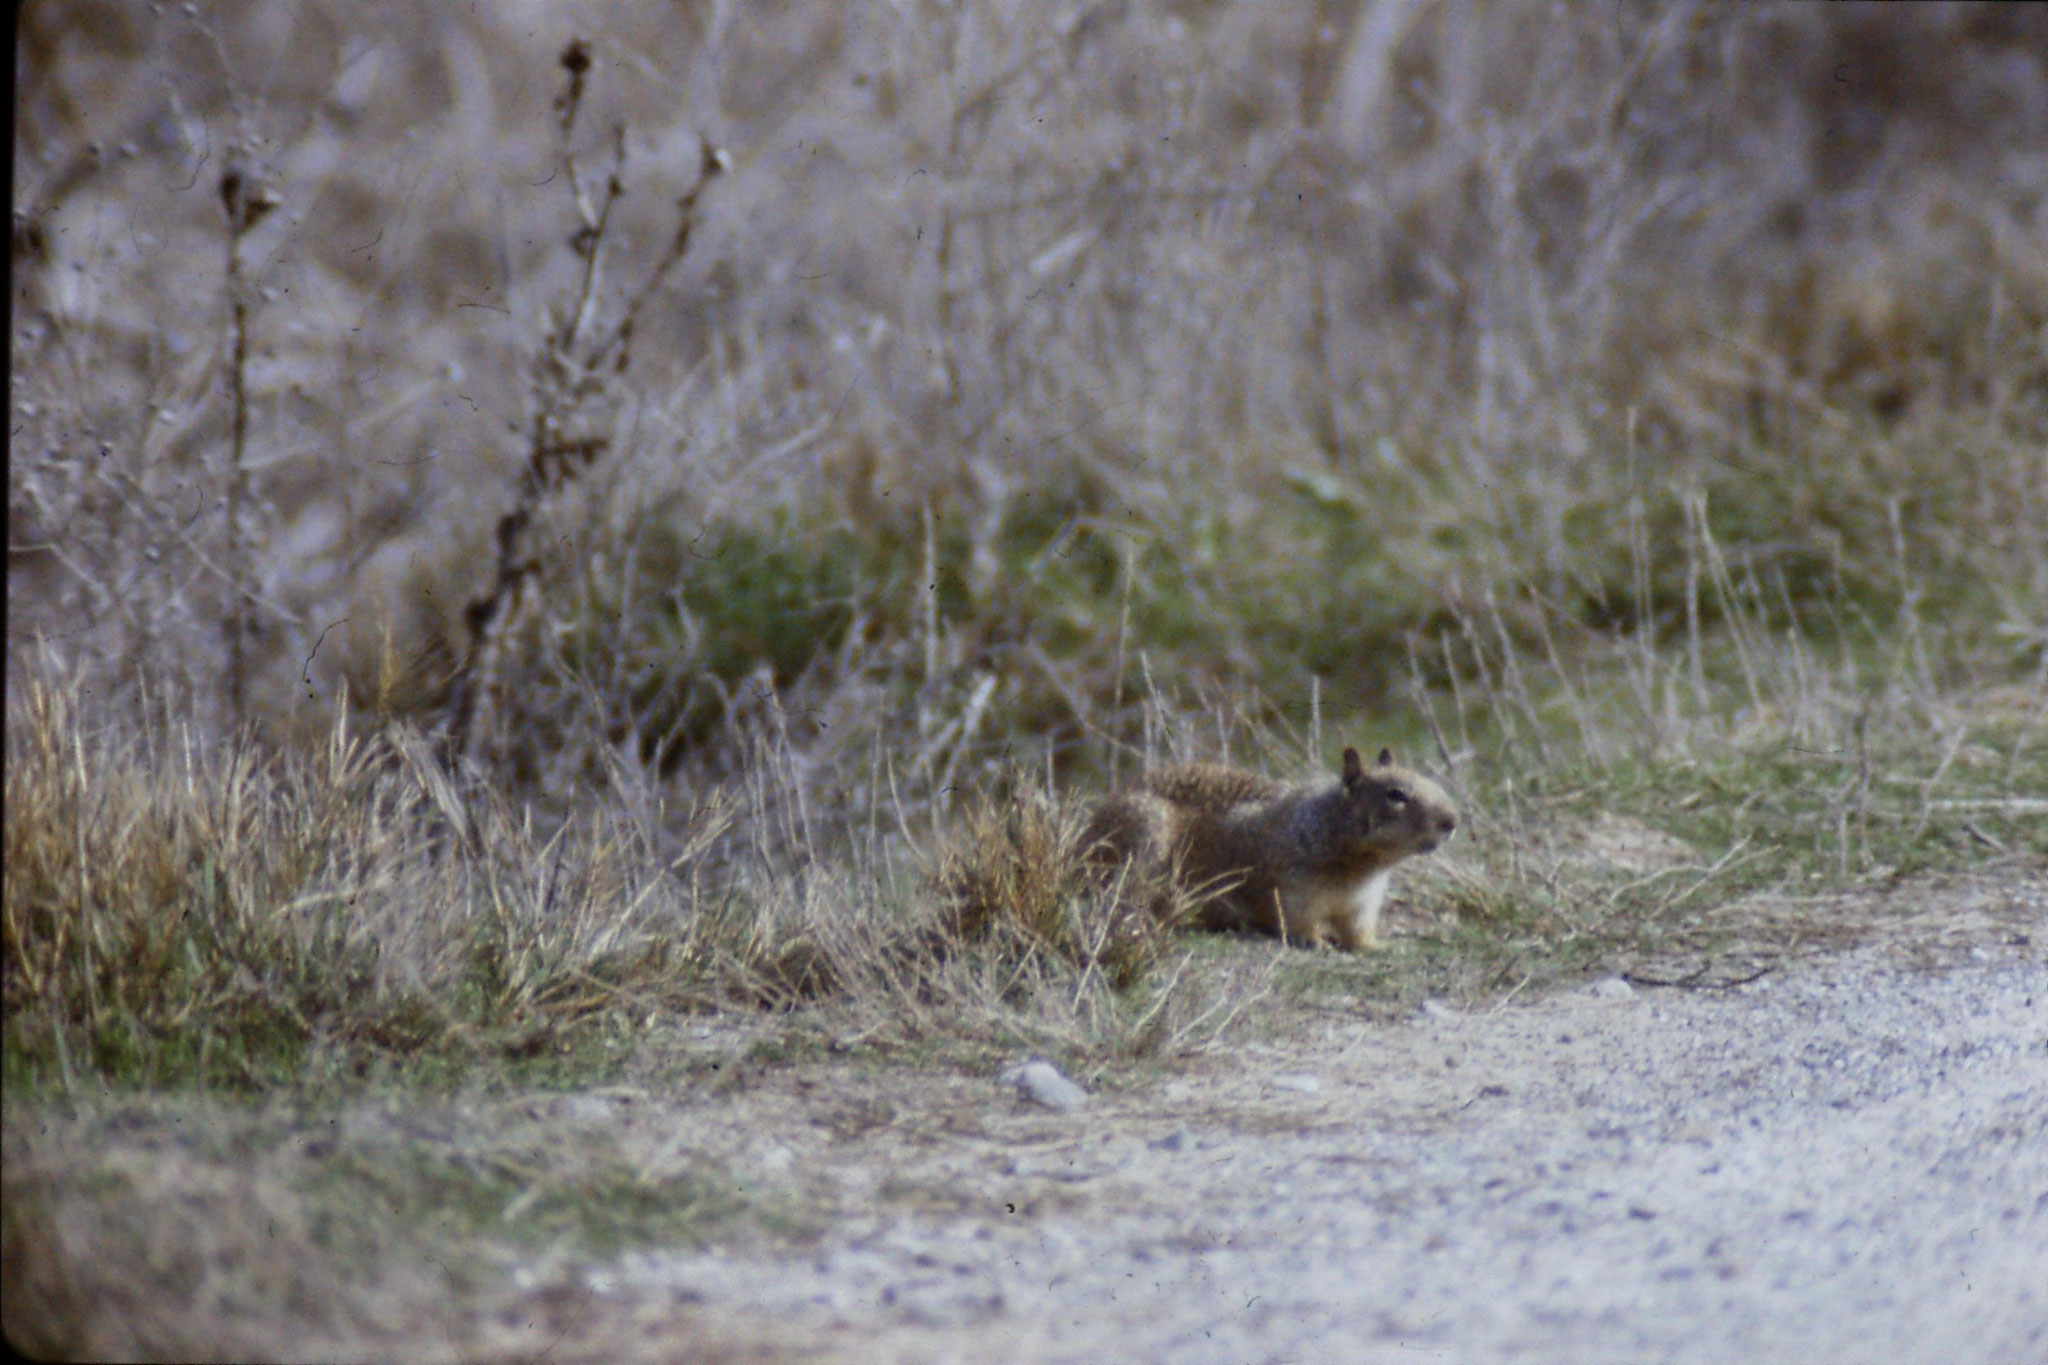 15/2/1991: 7: Sacramento NWR, Beechy Ground Squirrel